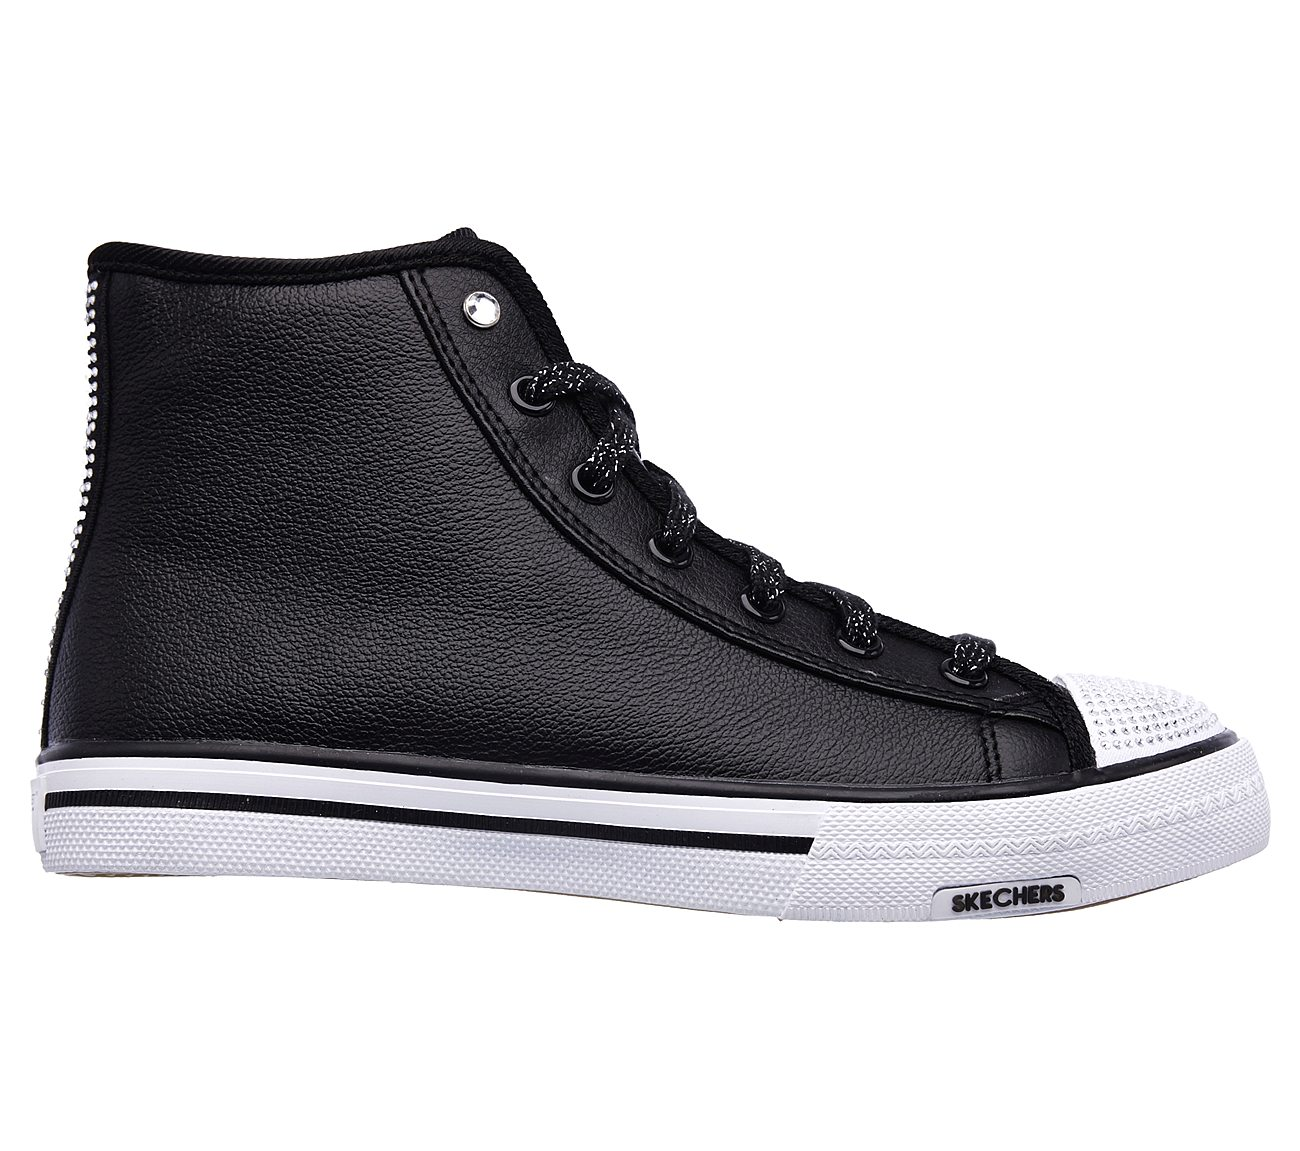 ff1b1e043374 Buy SKECHERS Utopia - Young Forever SKECHER Street Shoes only  45.00